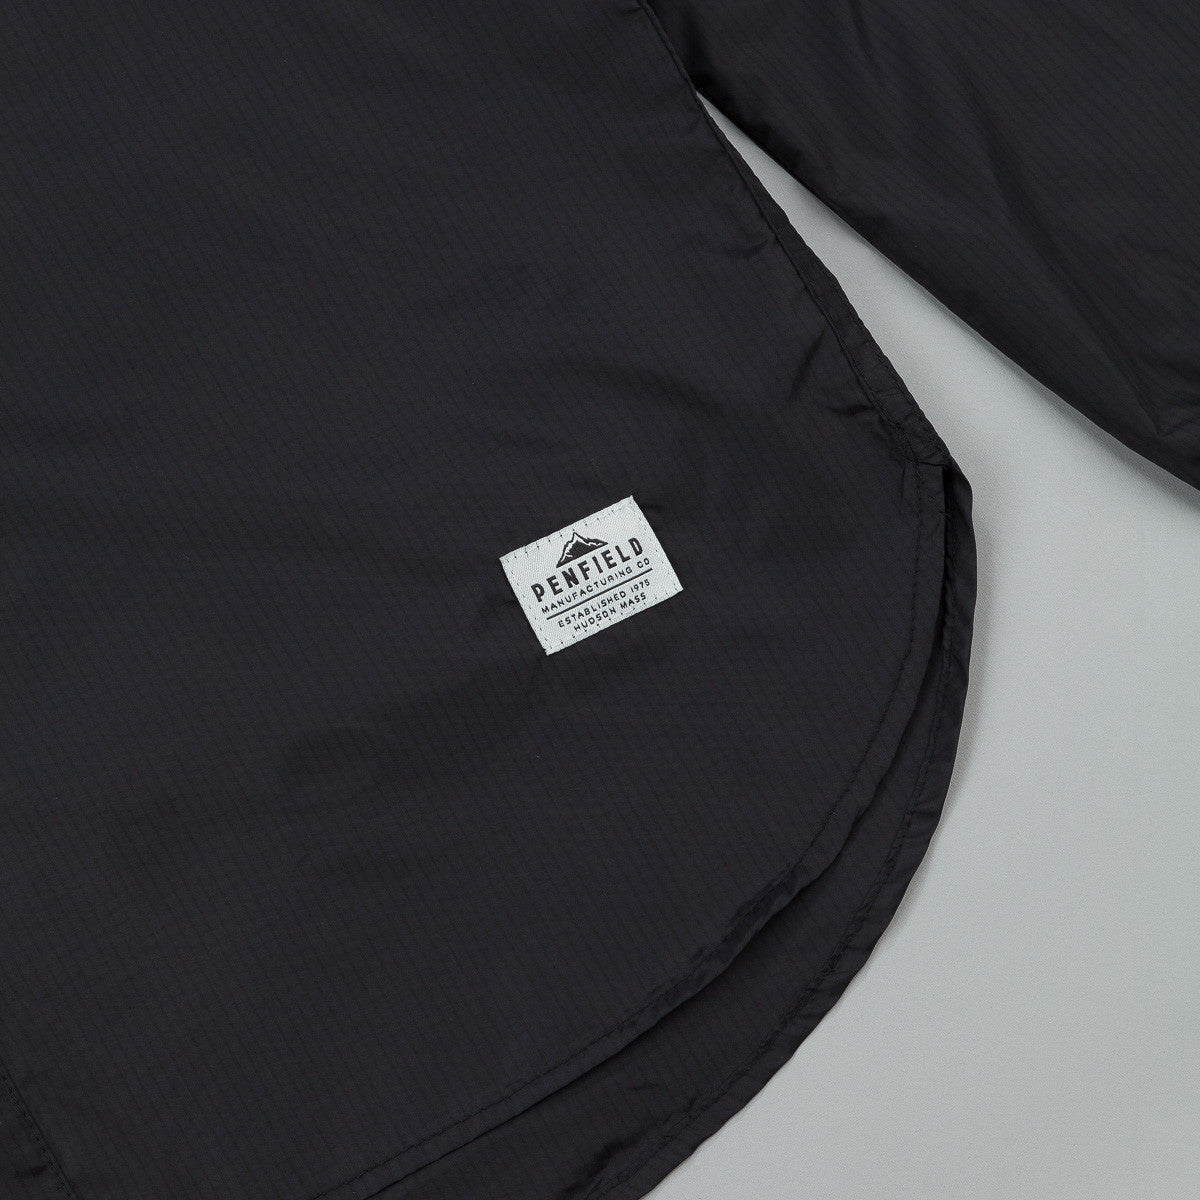 Penfield Fallowfield Ripstop Nylon Packable Hooded Shirt - Black